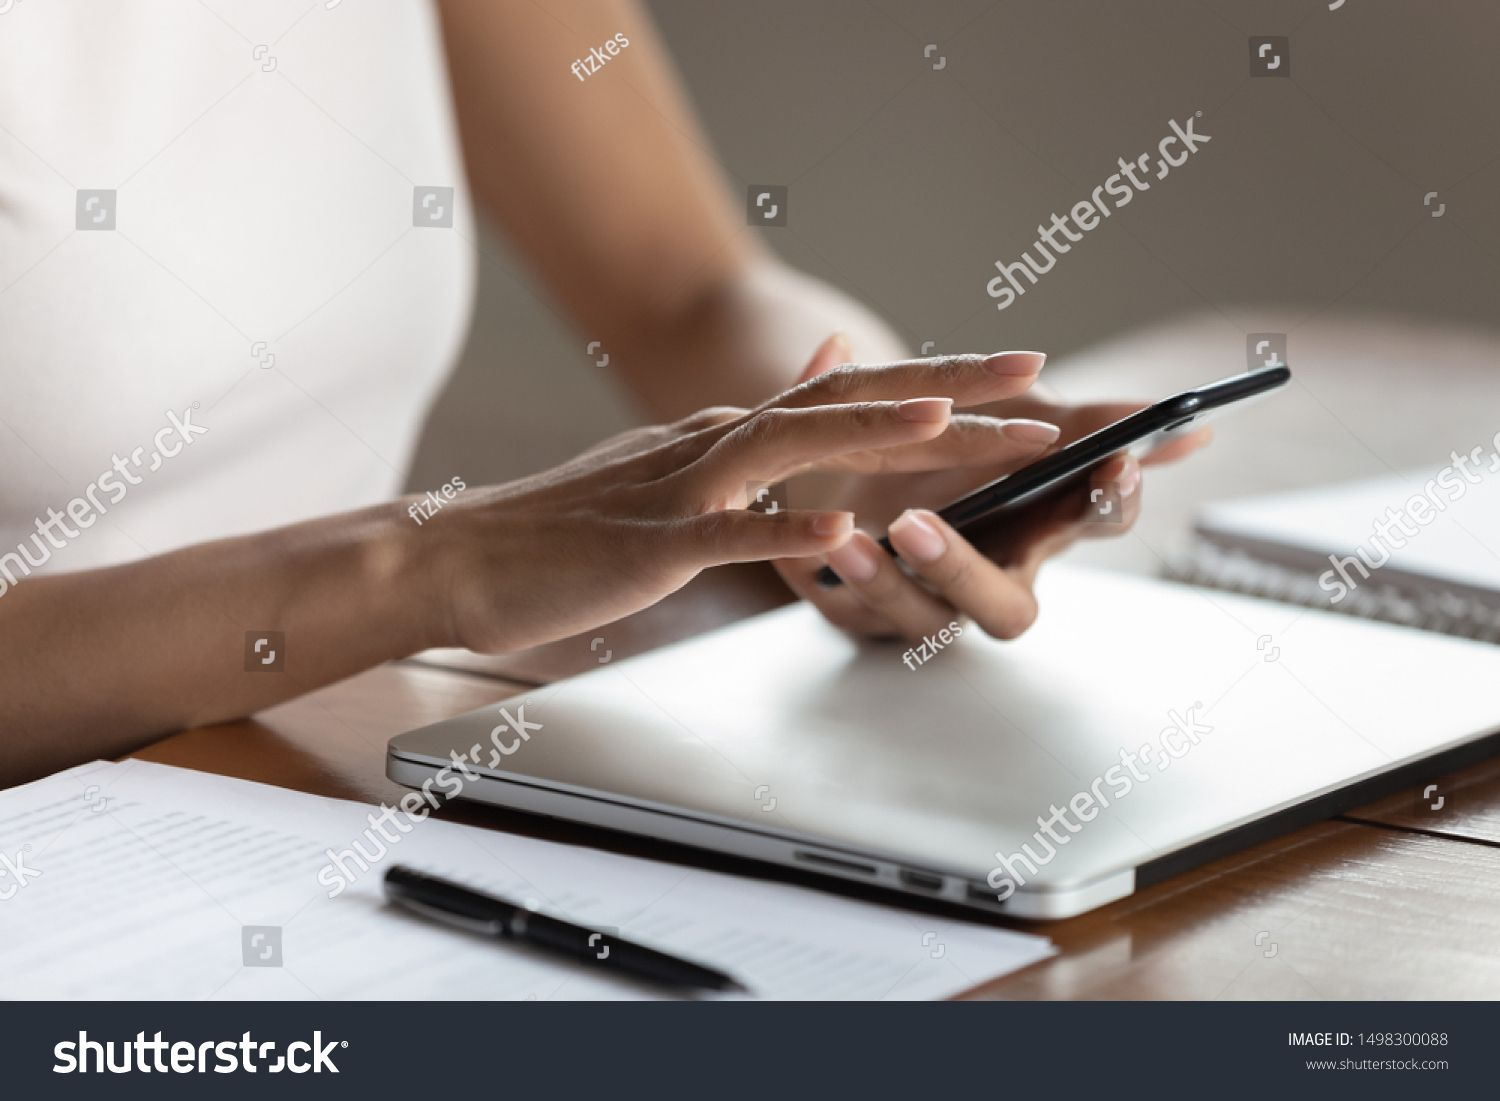 Crop close up of successful woman worker employee using modern cellphone typing texting message young female hold smartphone browsing fast wireless internet on cell techn...